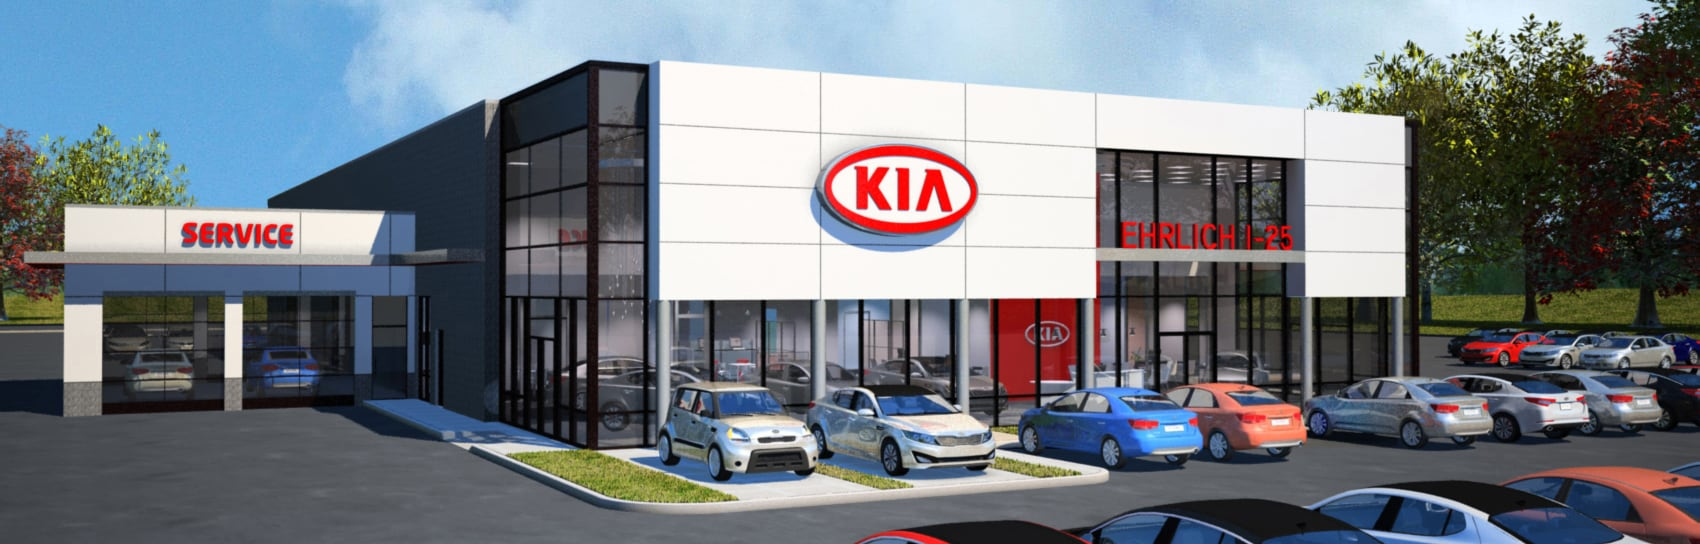 301 moved permanently Kia motor dealers